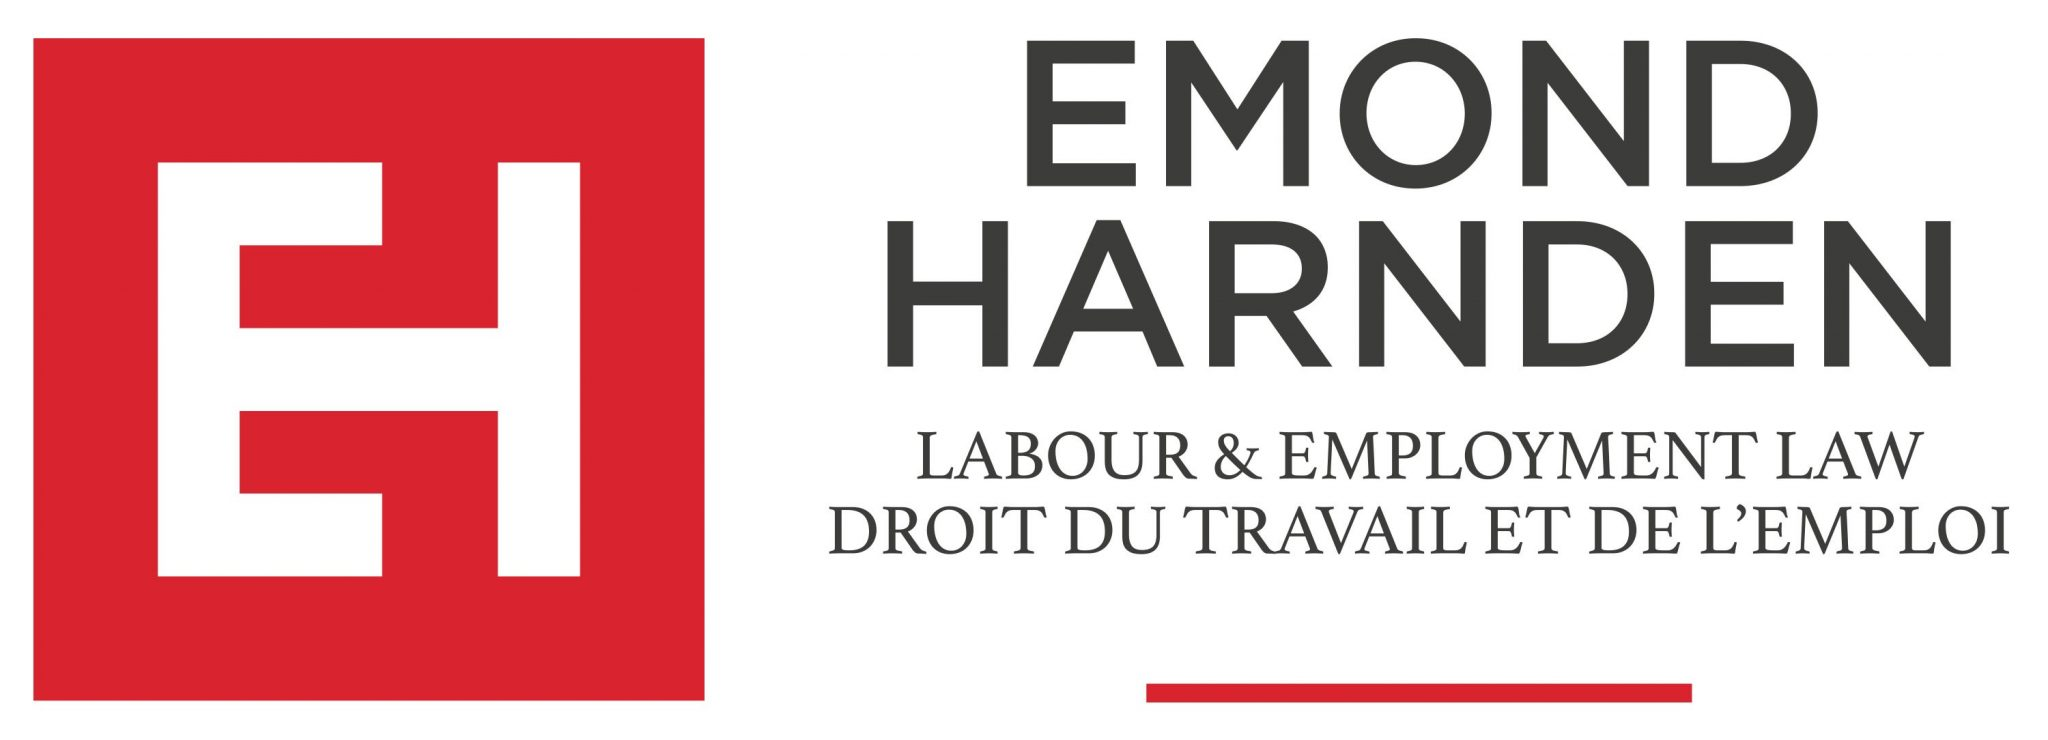 Emond Harnden logo, ONFE, ROPE, ottawa, Ottawa Network for Education, Reseaux d`Ottawa pour Education, charity, not for profit, fundraising